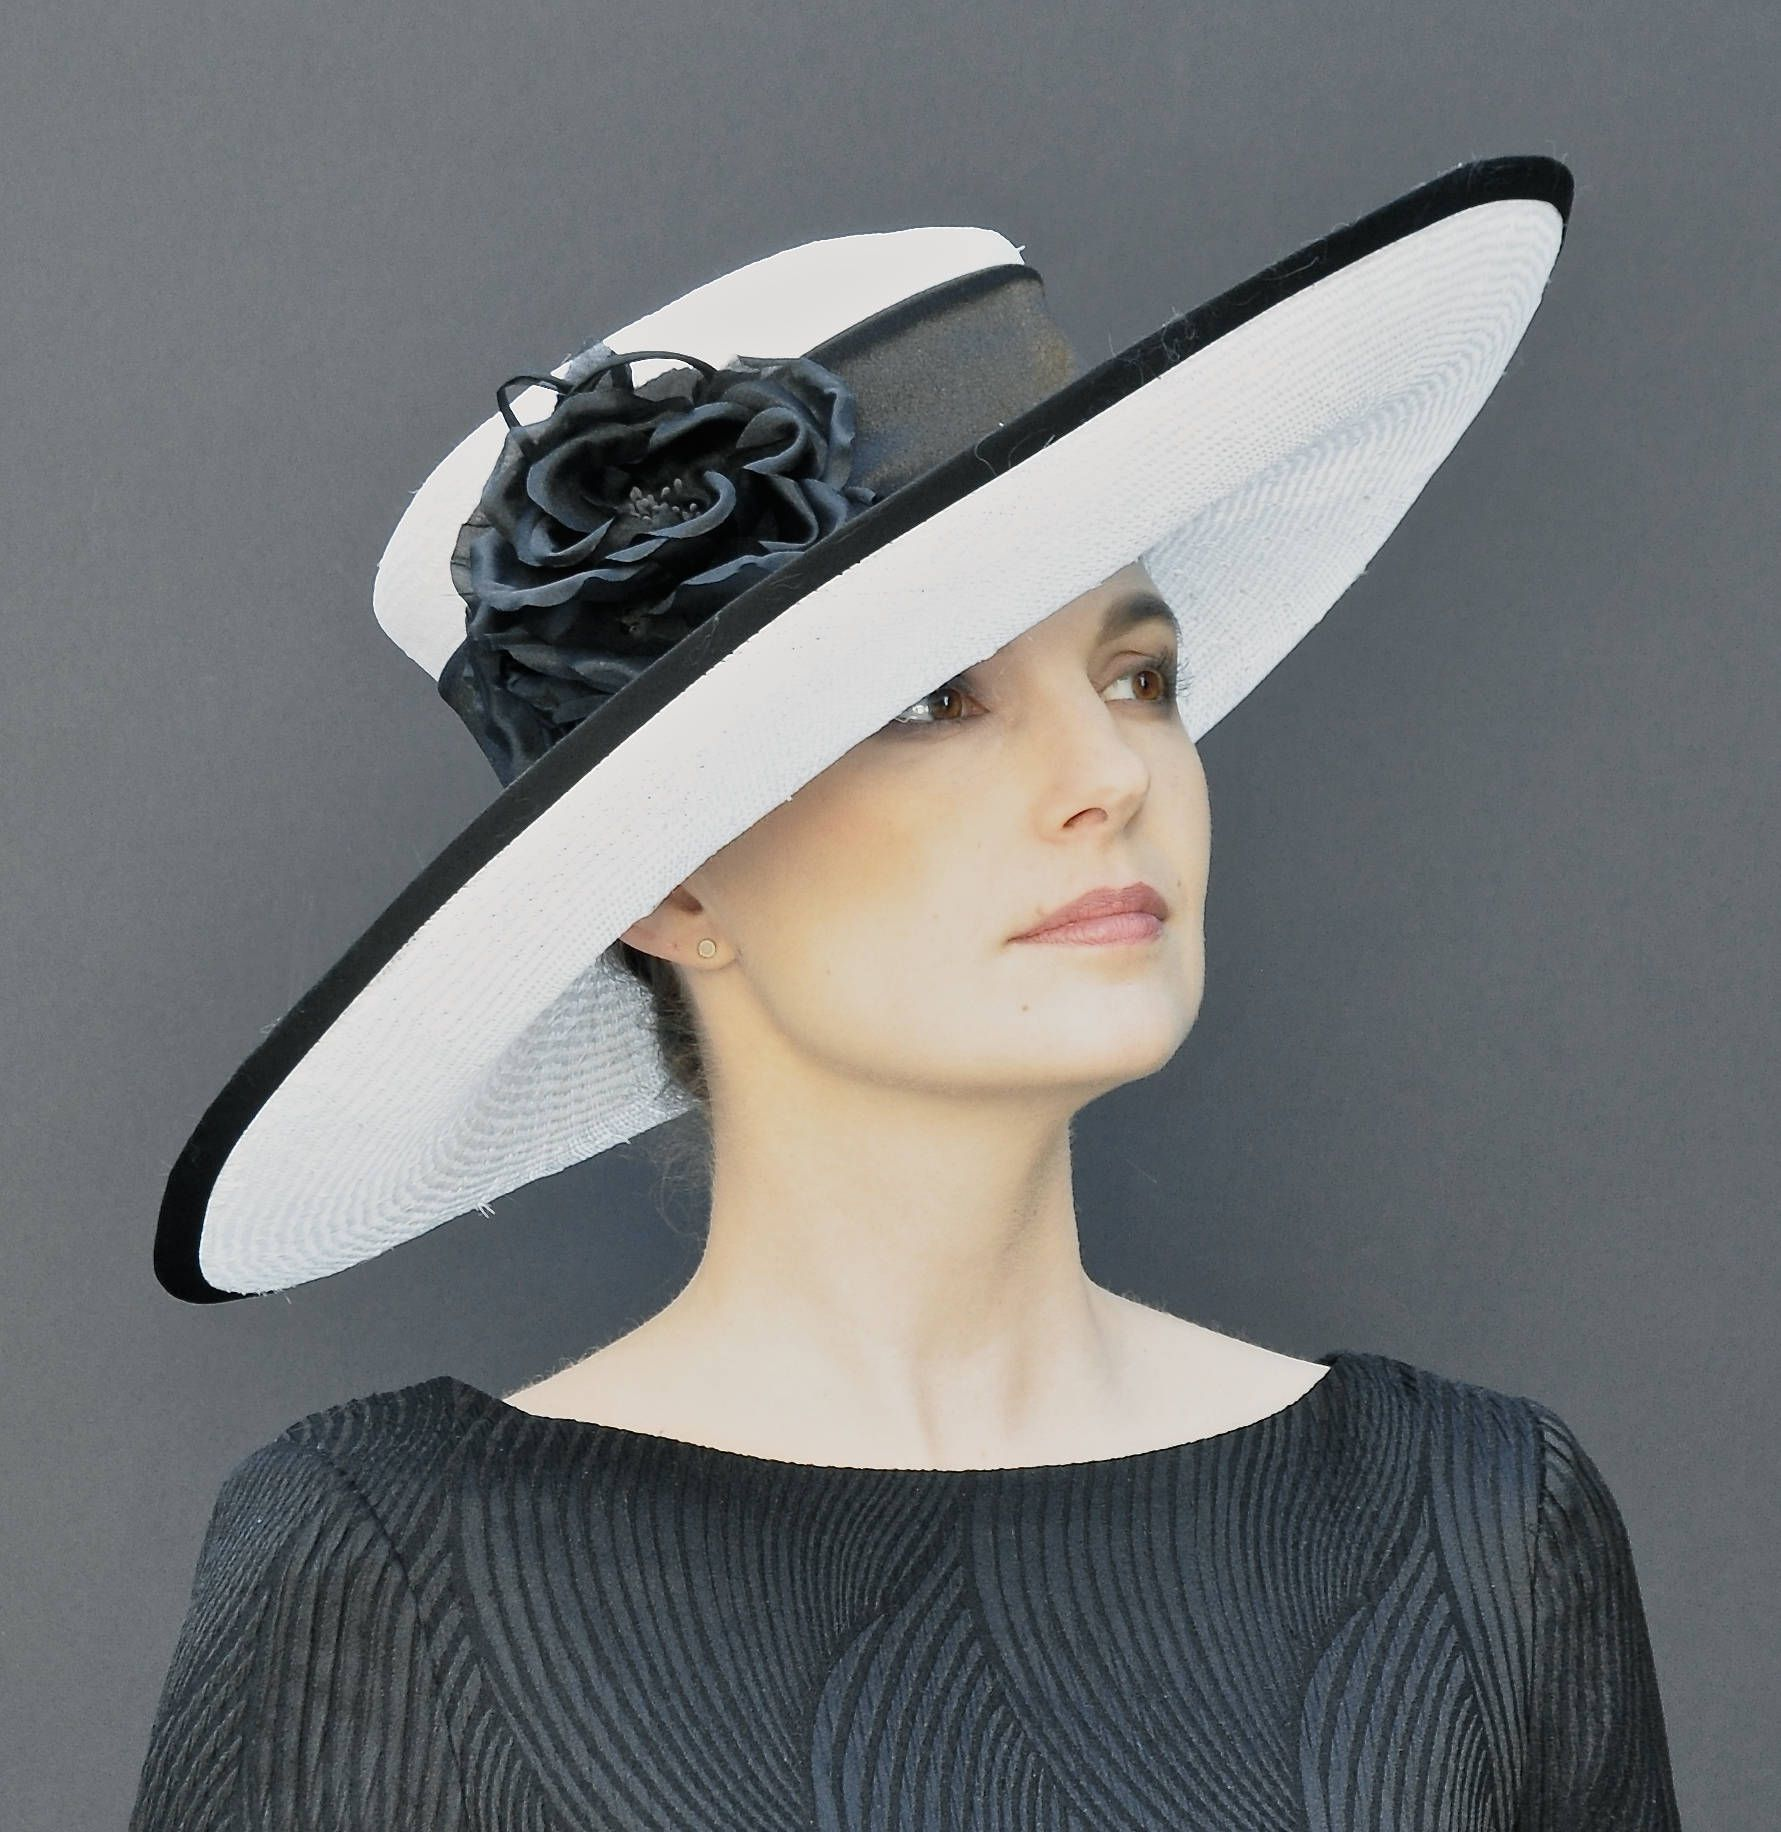 6d48aa9852c6 Kentucky Derby Hat, Wedding Hat, Church Hat, Wide Brim Hat Black and White  Hat, Women's Formal Hat Ascot Hat Special Occasion Hat Event Hat  #womenhatsformal